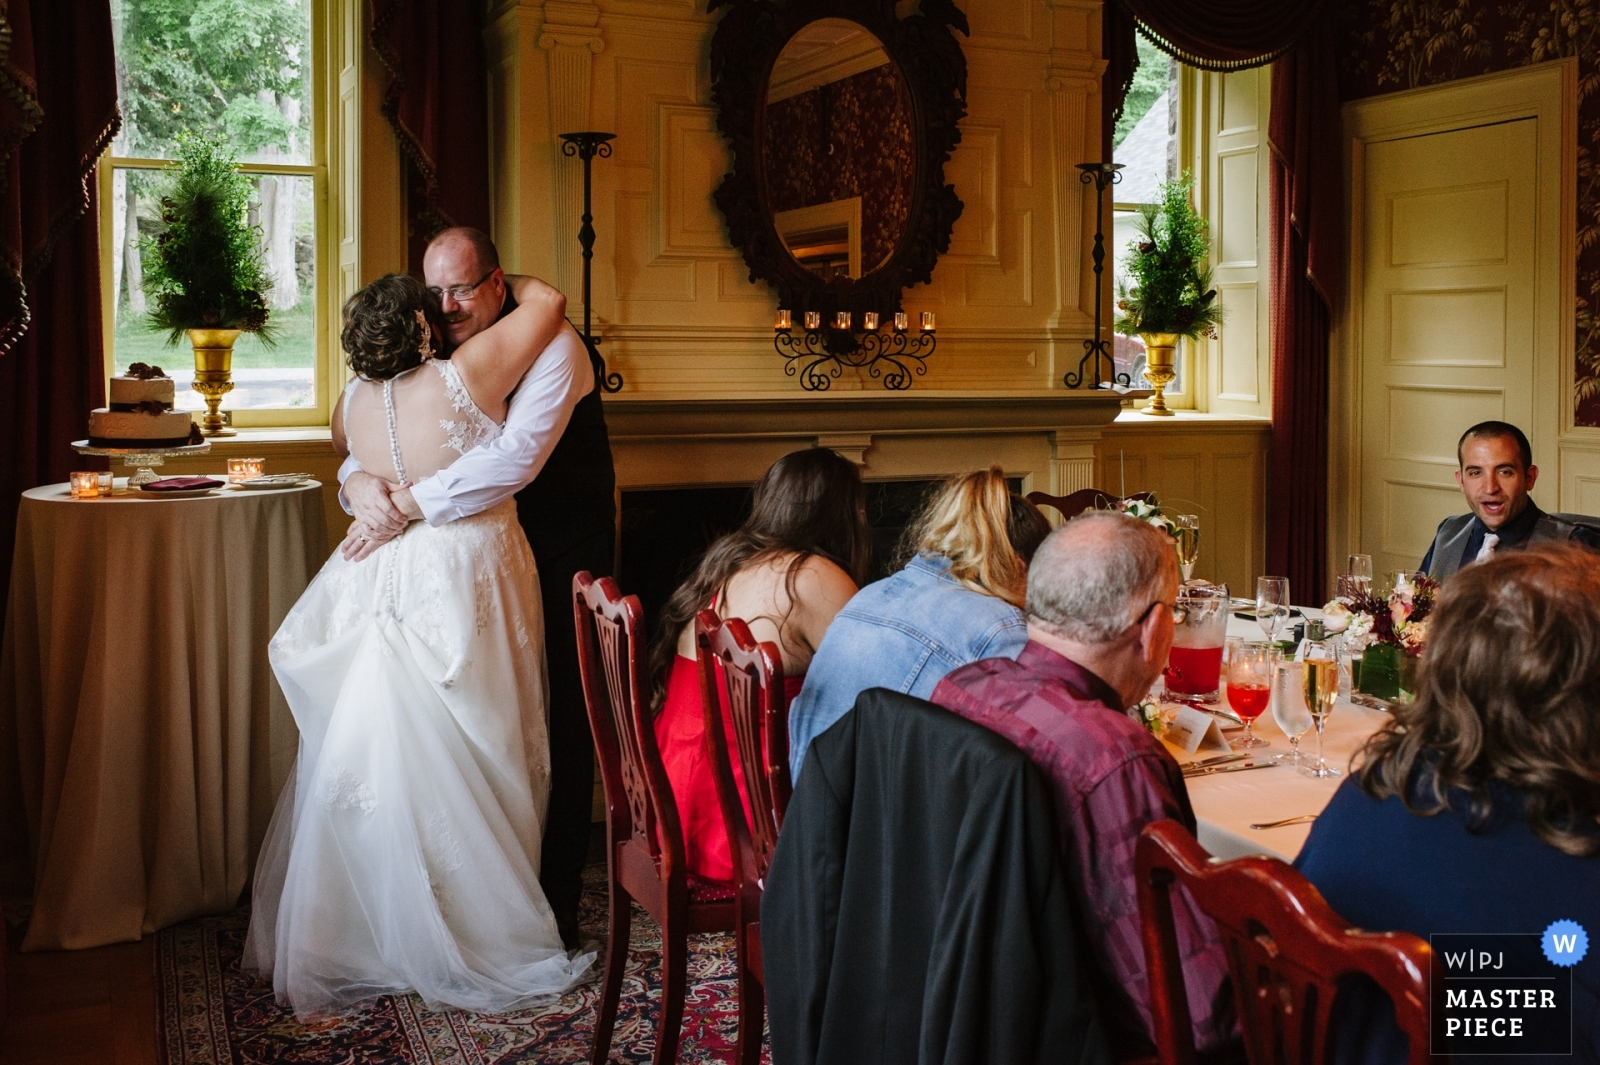 A bride and groom dance together closely during dinner at their wedding. - Schenectady, New York - Upstate Wedding Photography -  | The Inn at Erlowest, Lake George, NY